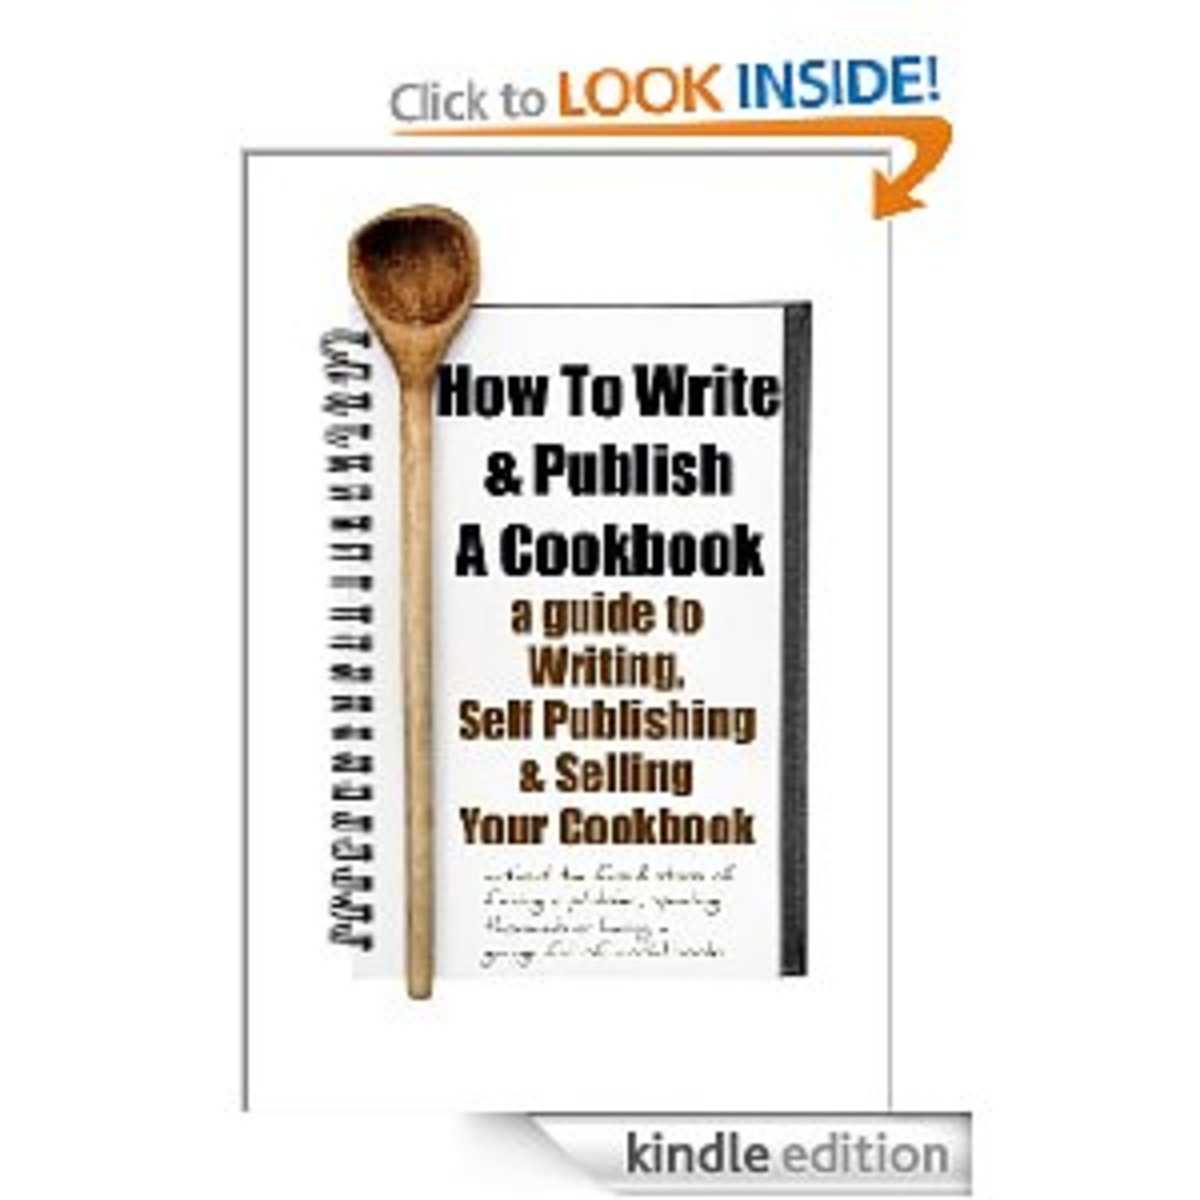 How to Write and Self-Publish a Cookbook on Kindle